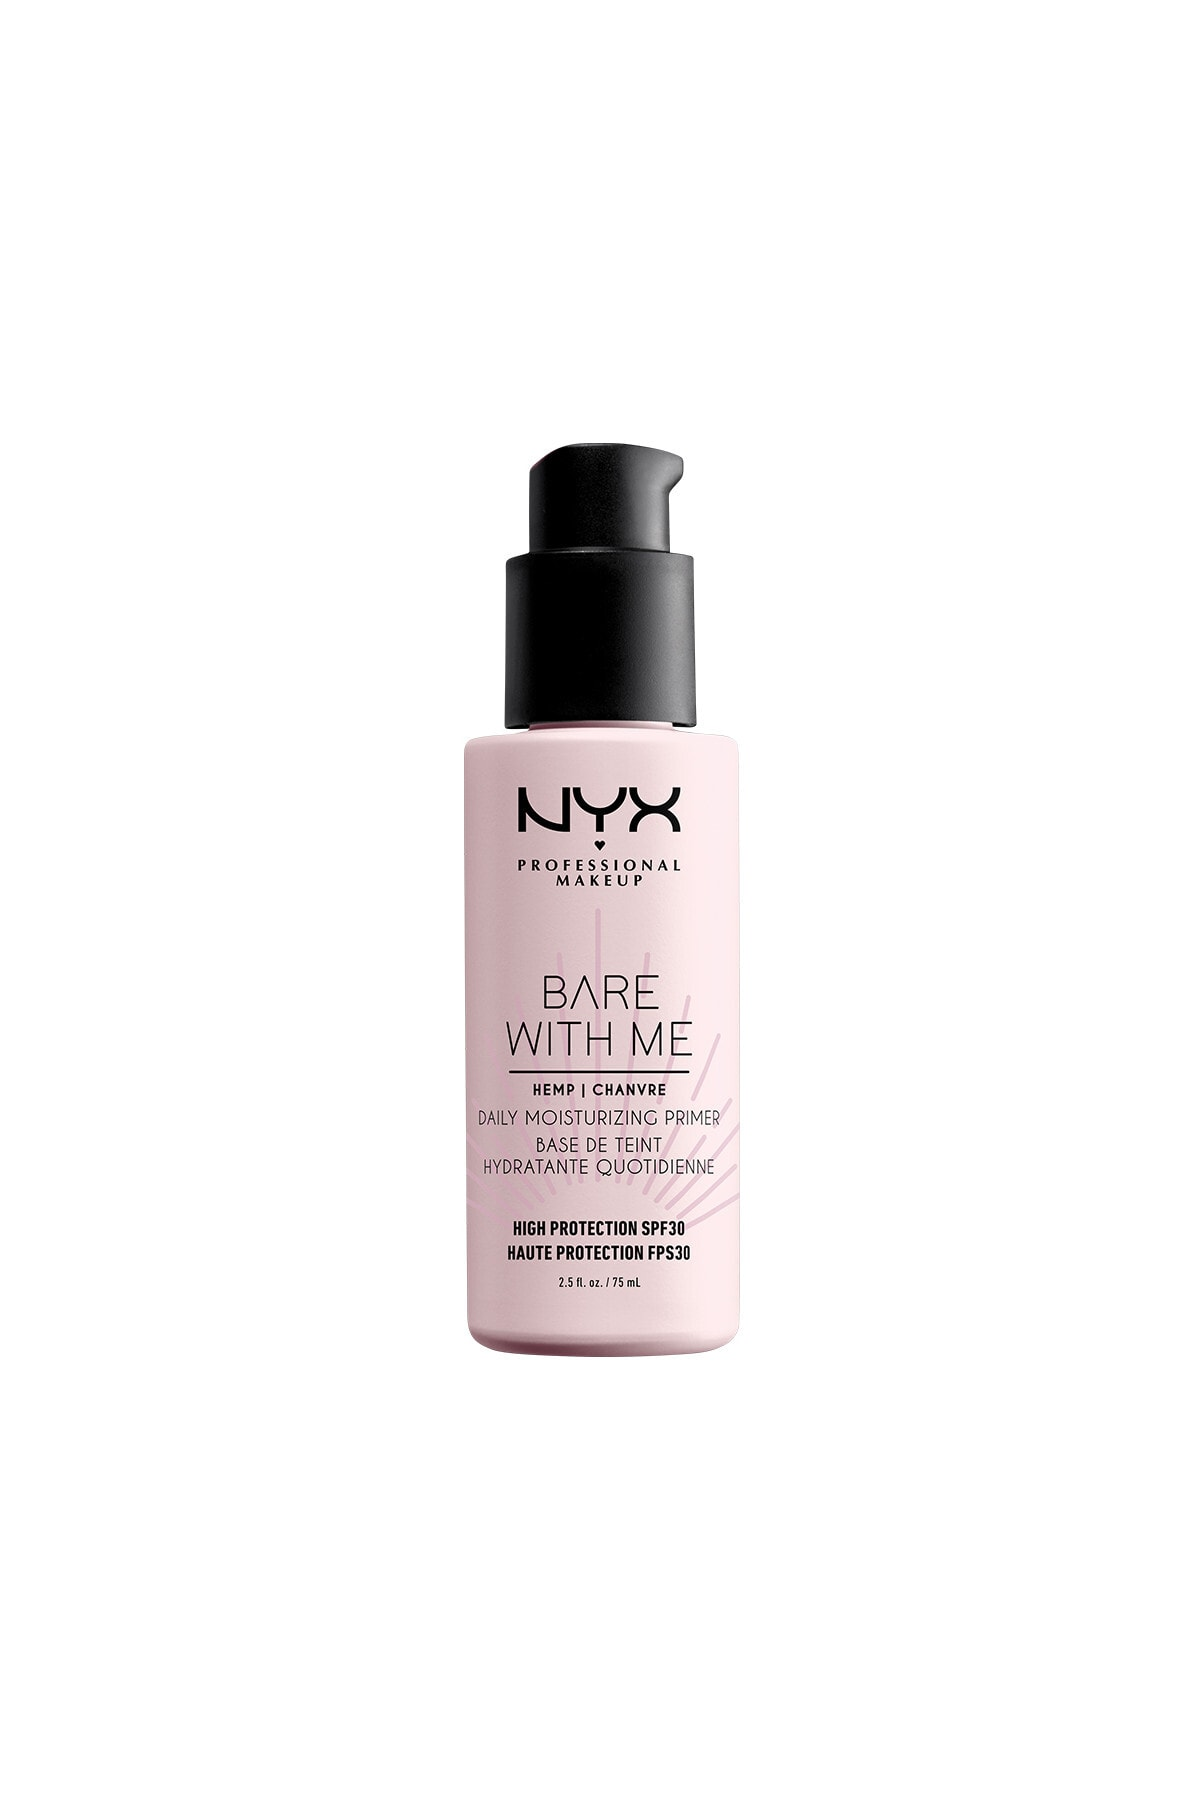 NYX Professional Makeup Bare With Me Cannabis Sativa Seed Oil Spf30 Primer 800897202118 1